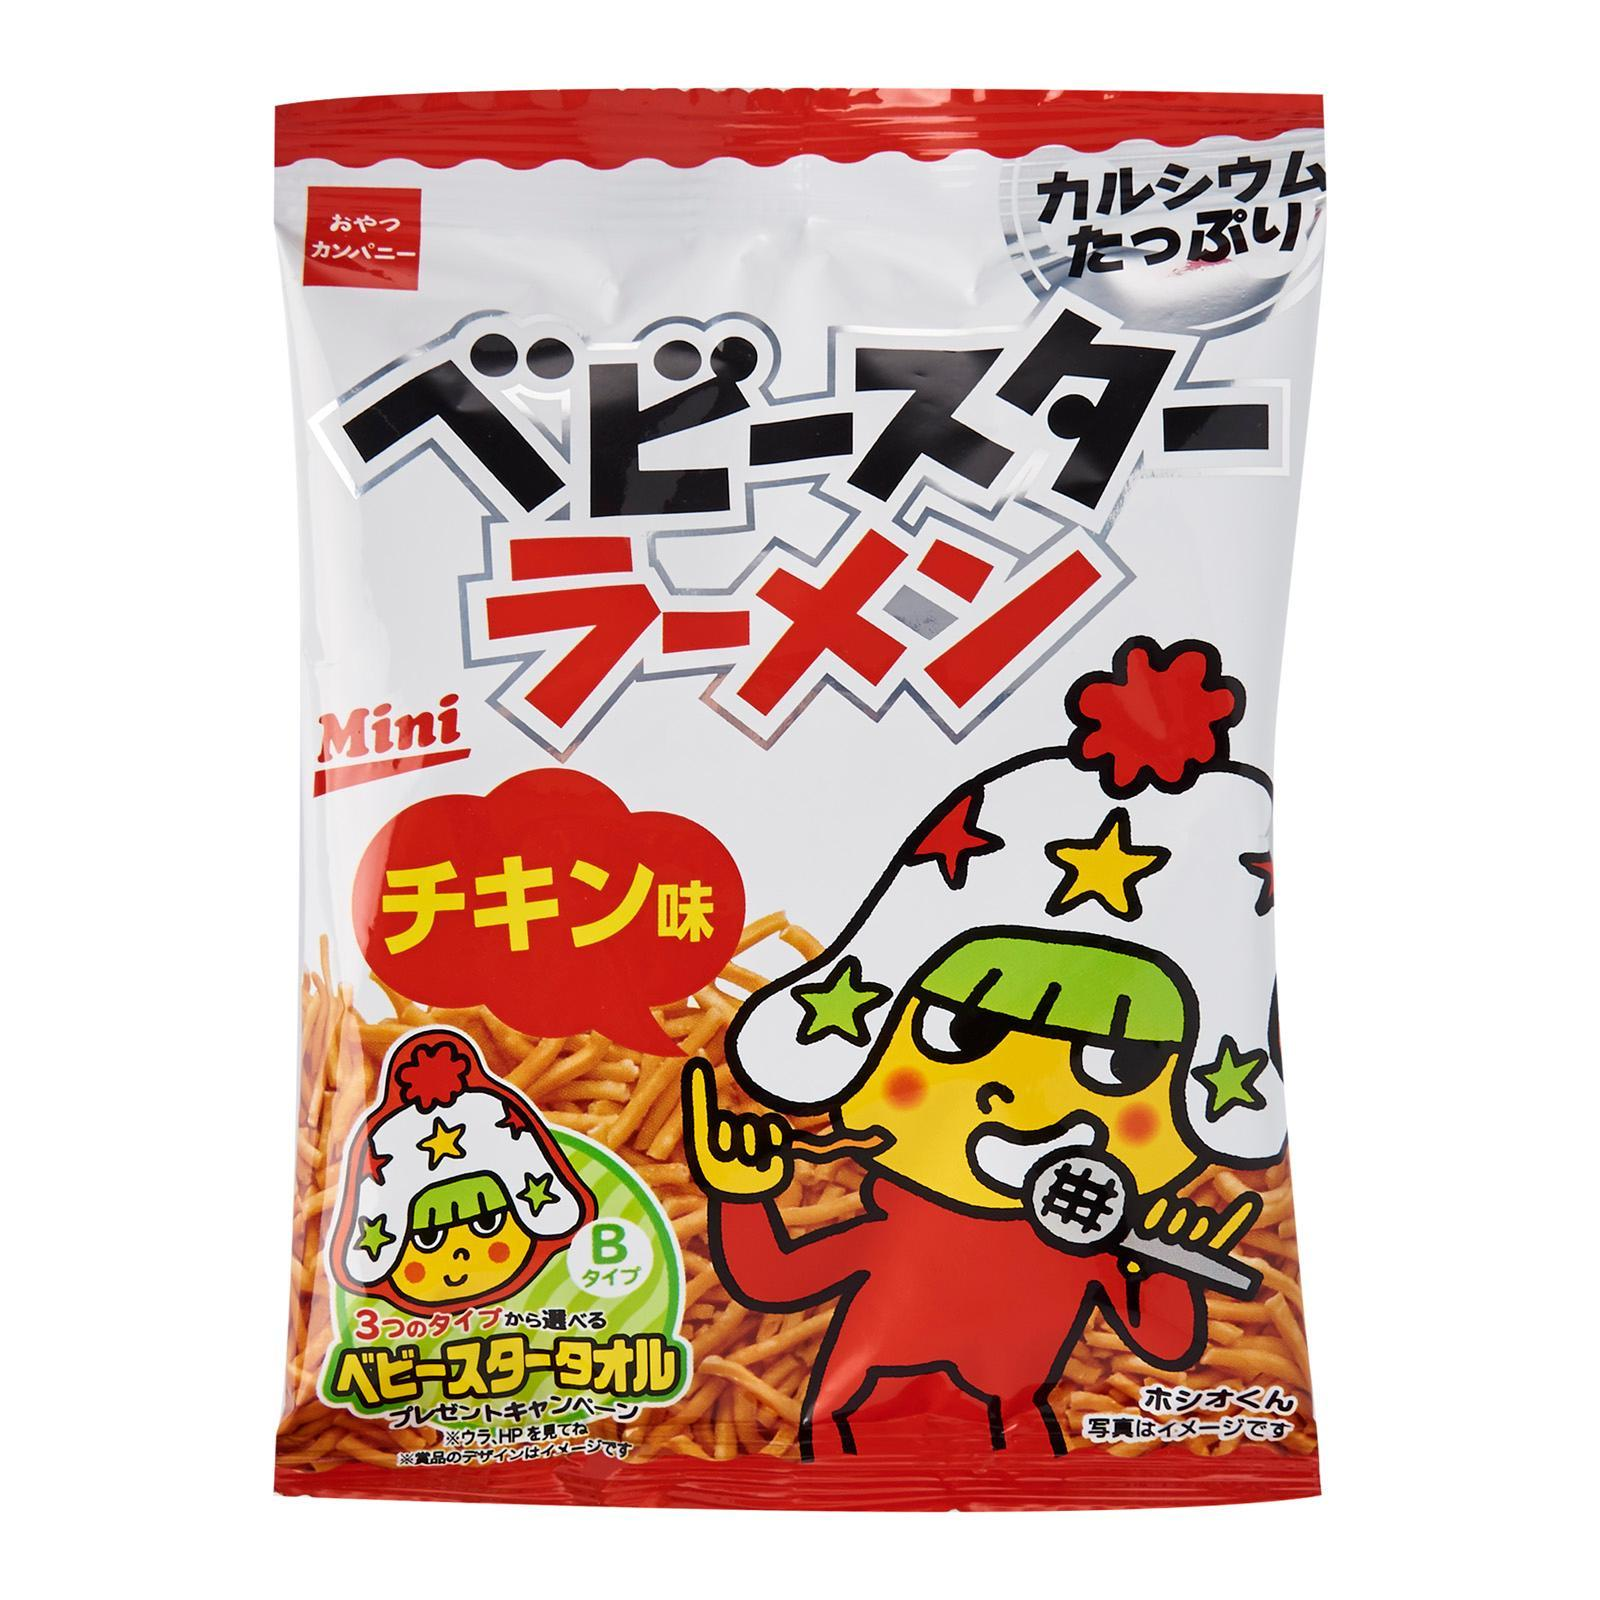 Oyatsu Baby Star Chicken Mini Japanese Snack - By J-mart Japanese Food Market